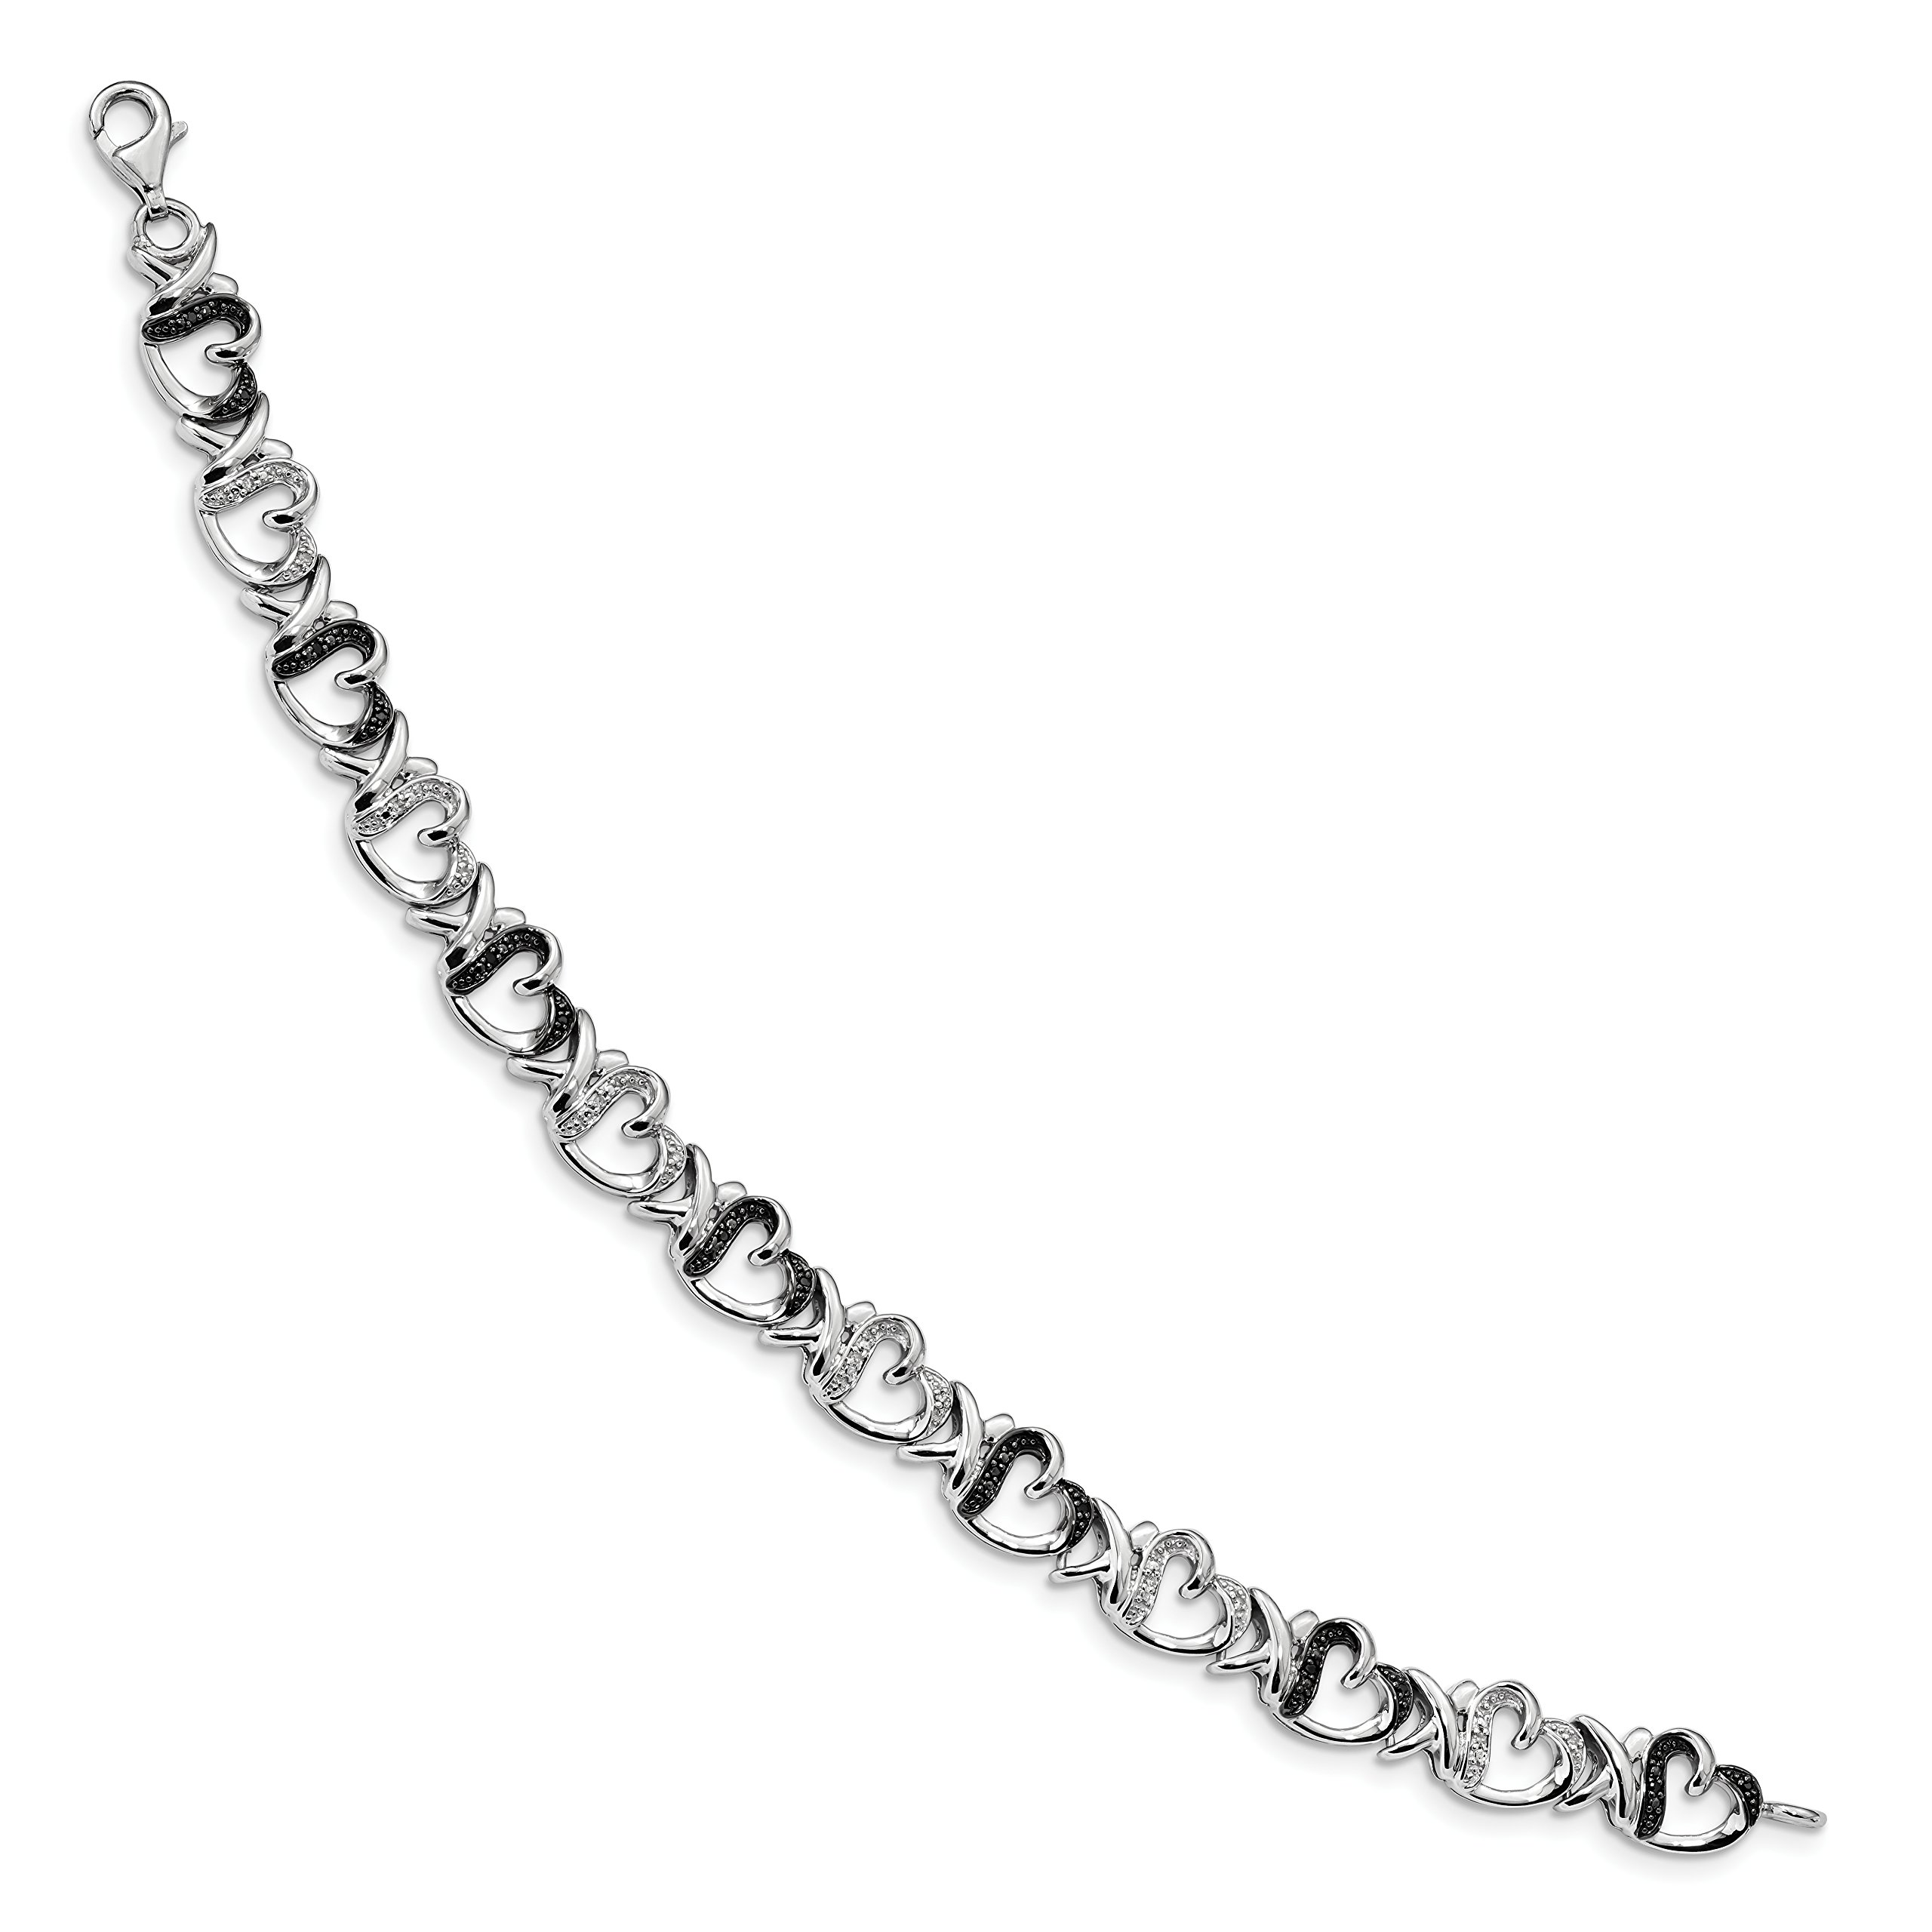 ICE CARATS 925 Sterling Silver Black White Diamond Bracelet 7.5 Inch /love Fine Jewelry Gift Set For Women Heart by ICE CARATS (Image #2)